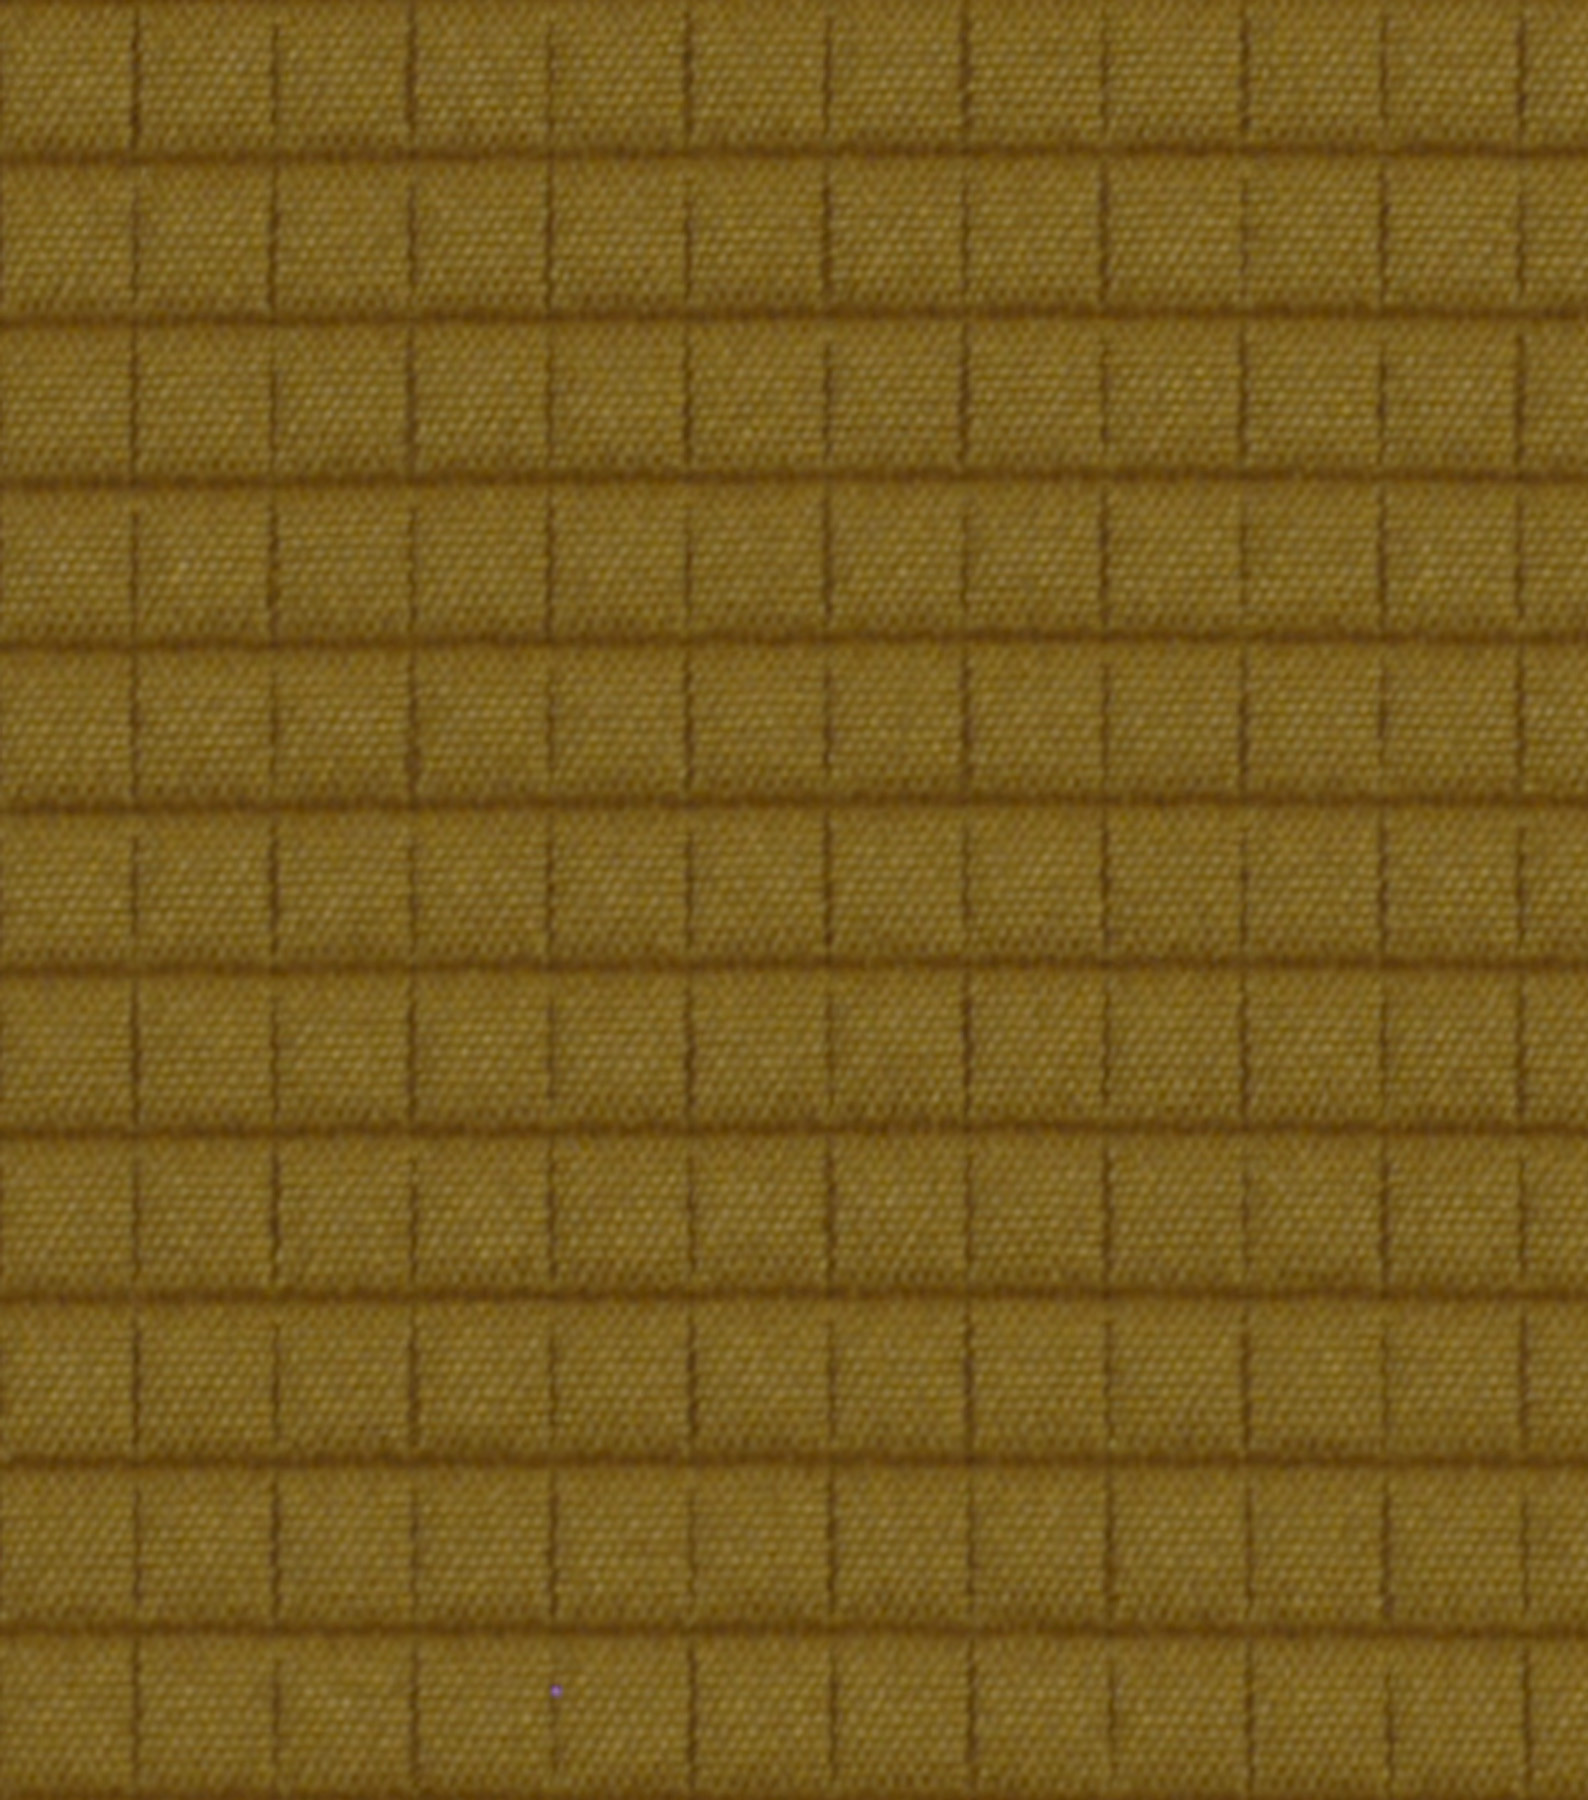 Home Decor 8\u0022x8\u0022 Fabric Swatch-Signature Series Grid Squared Cashew